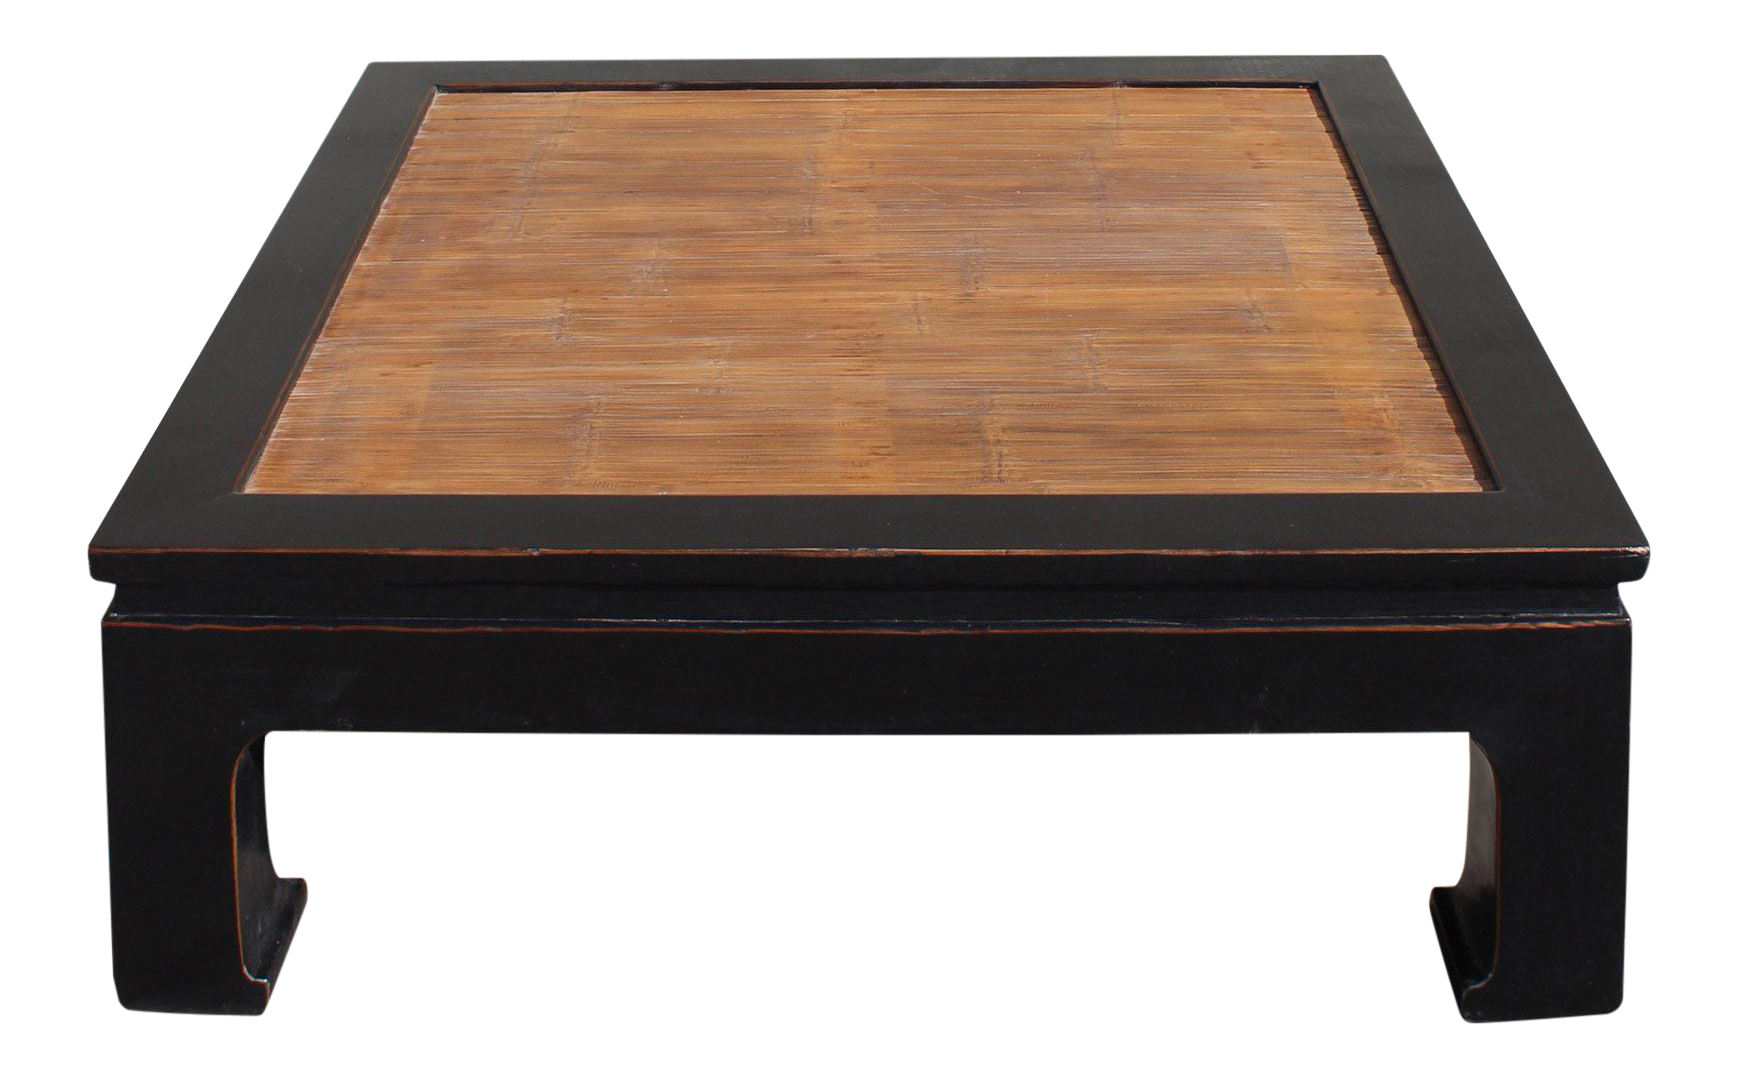 Black Lacquer Brown Bamboo Strip Top Square Curved Legs Coffee Table